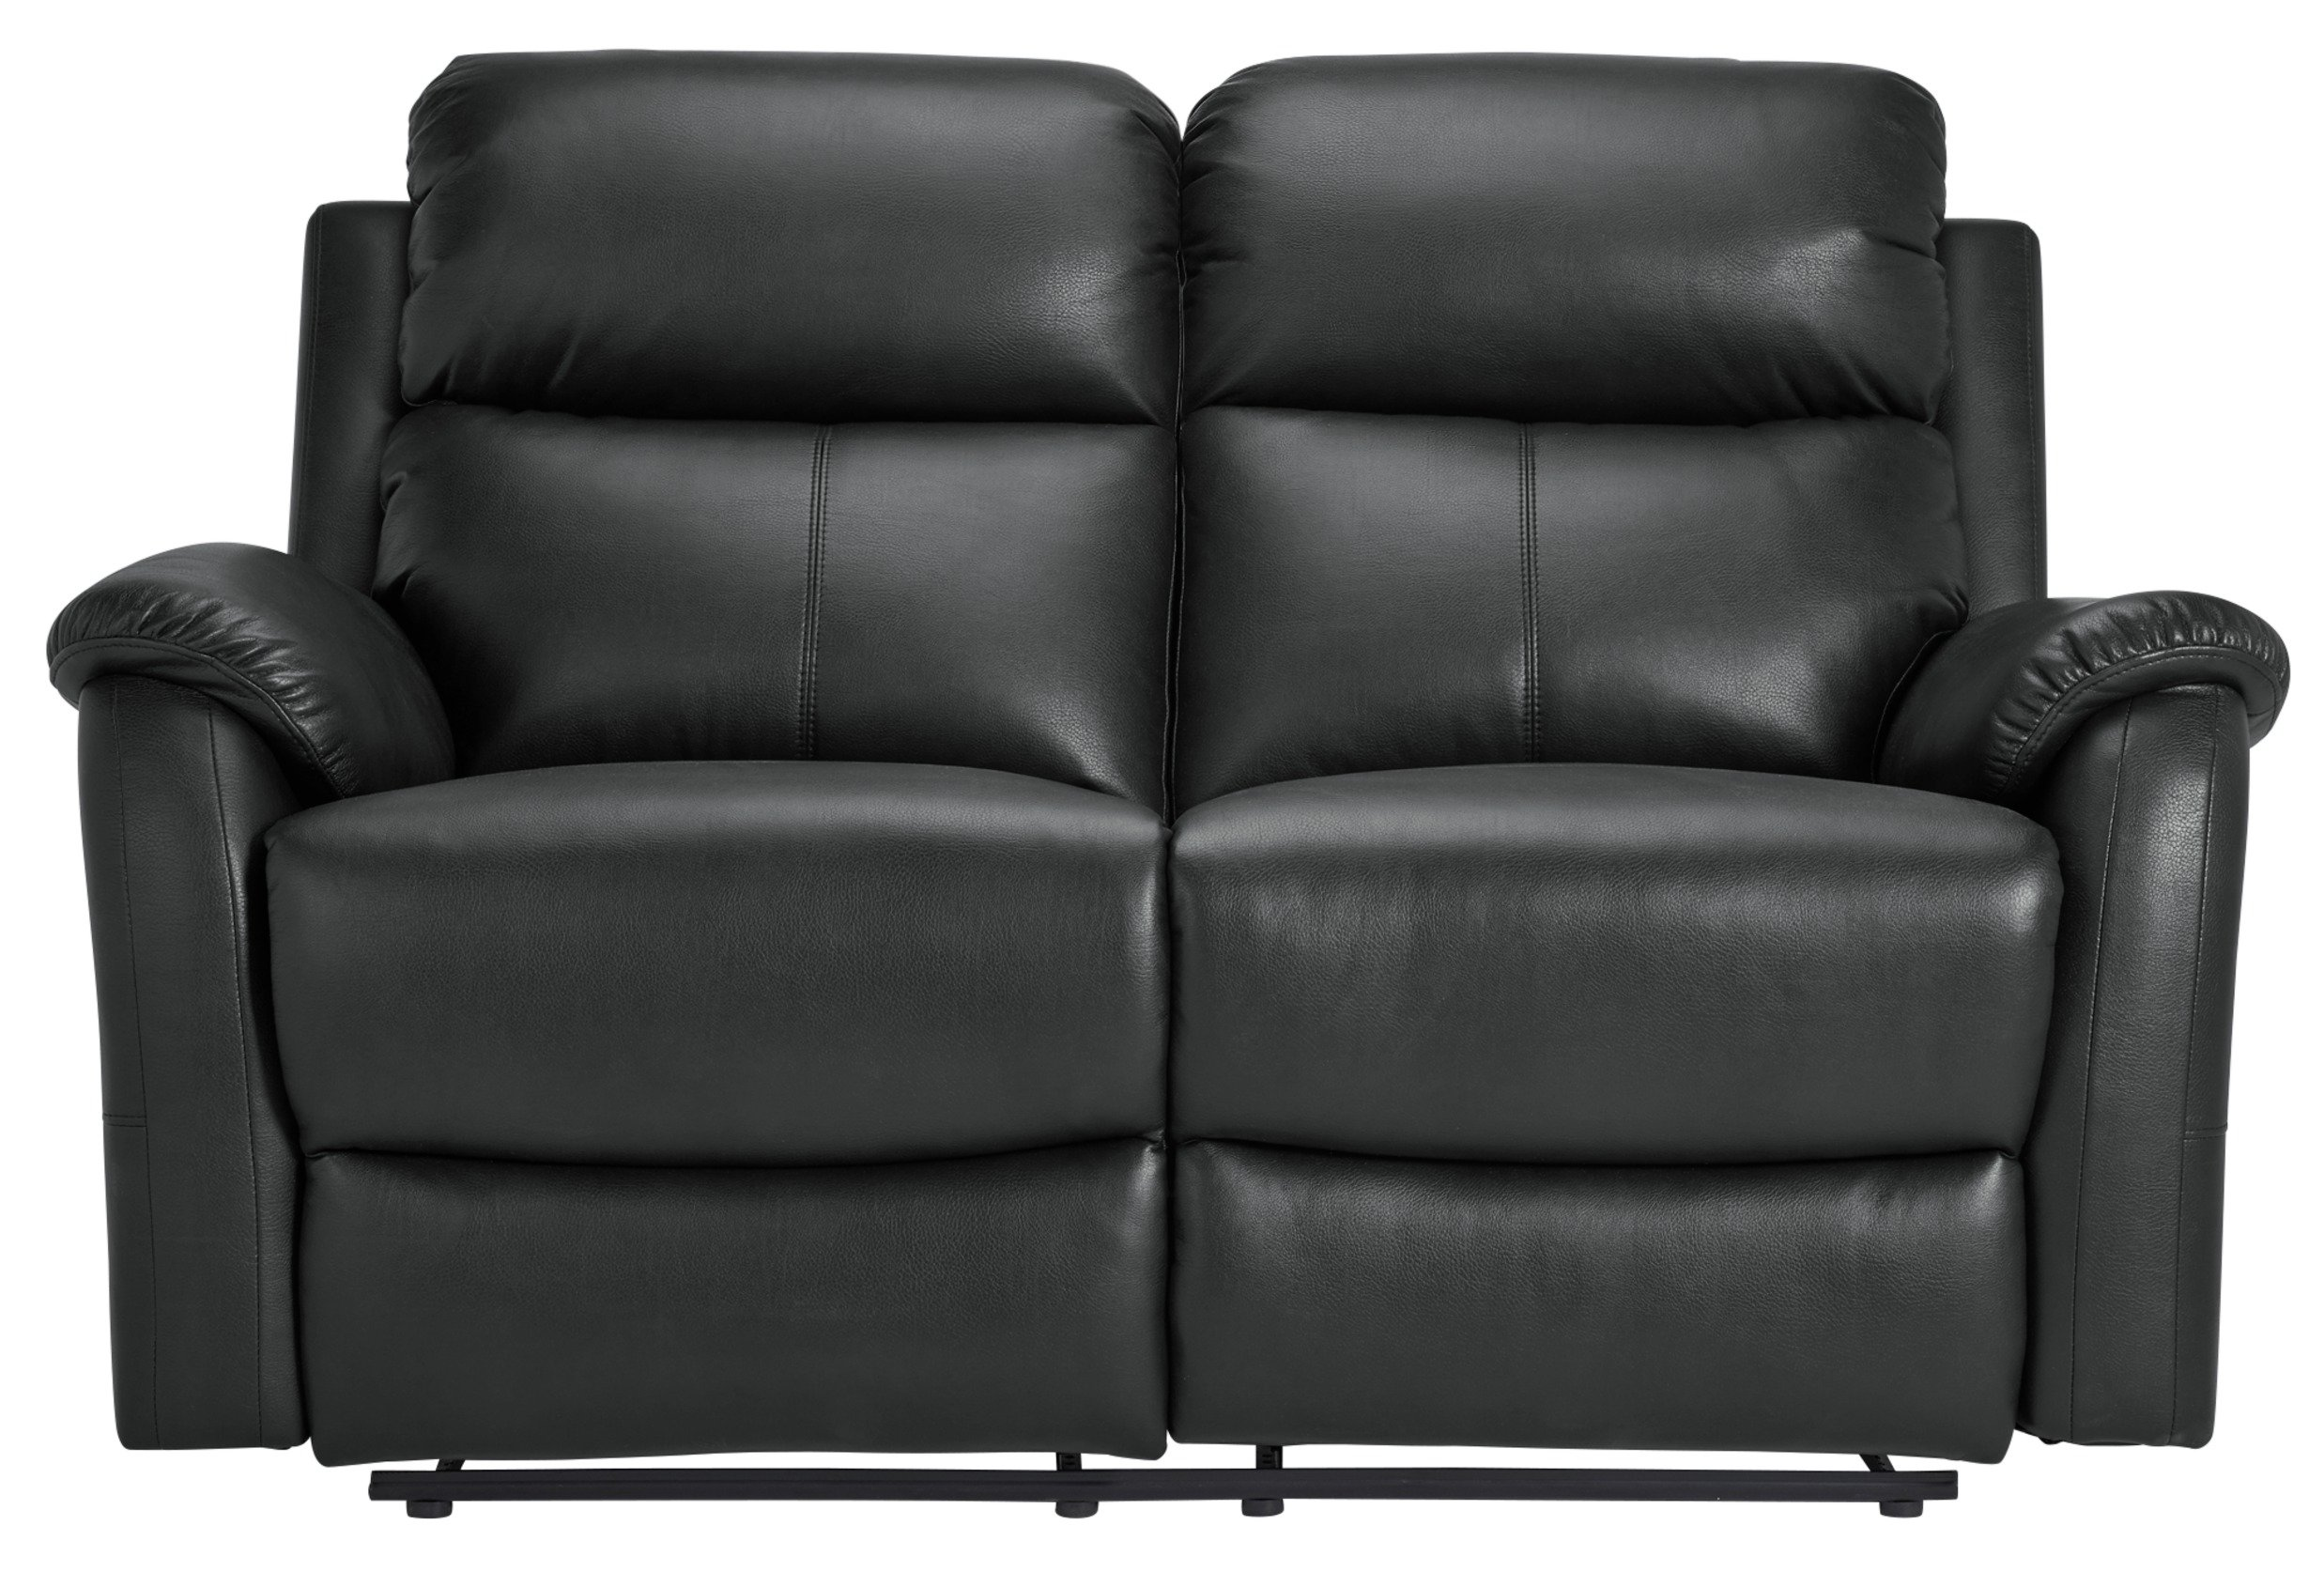 leather vs fabric sofa india modular chairs sofas argos home tyler 2 seater recliner black